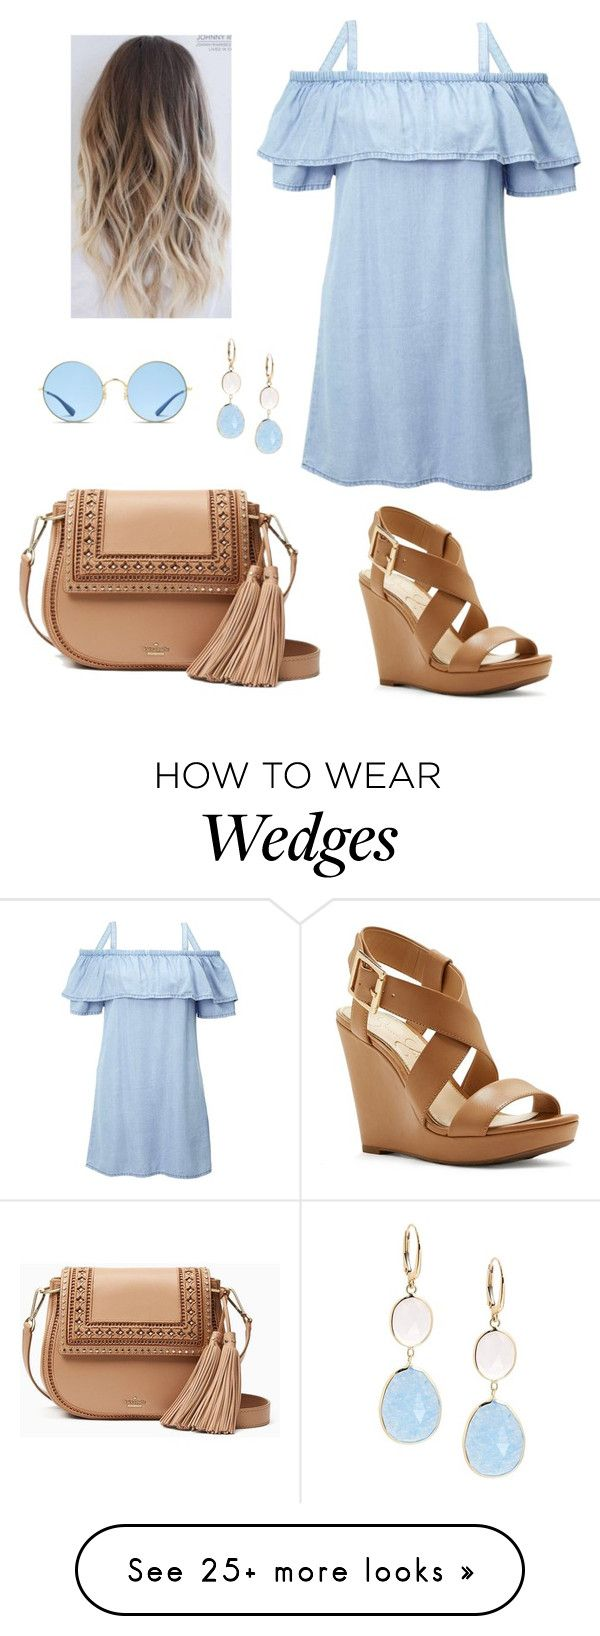 . by persik27 on Polyvore featuring Miss Selfridge, Kate Spade, Jessica Simpson, Saks Fifth Avenue and Ray-Ban